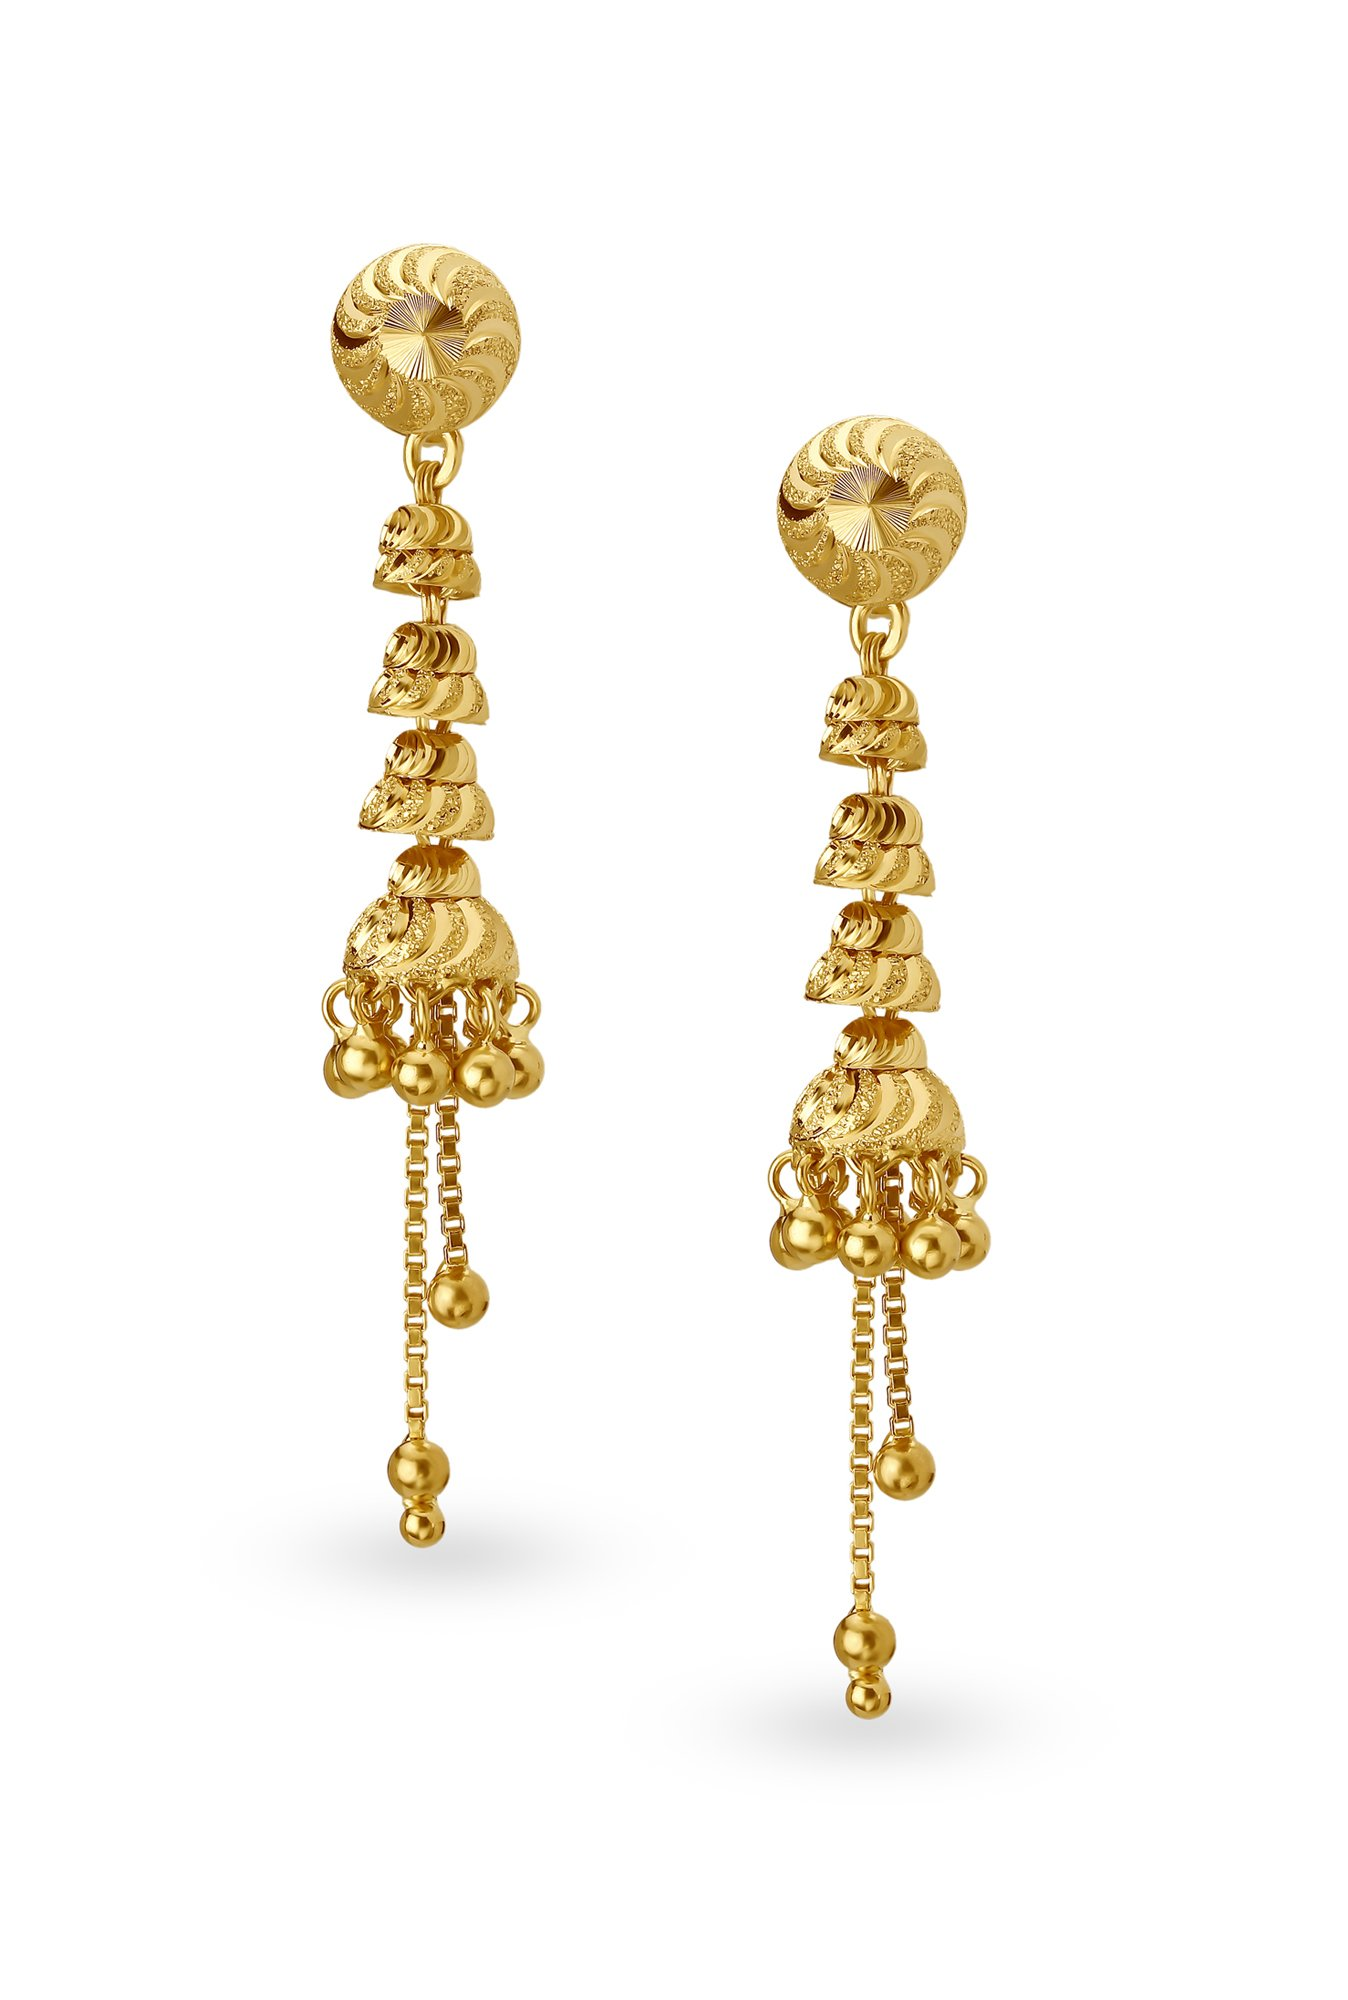 jewellery earrings products gold spec dr detail sgs ee